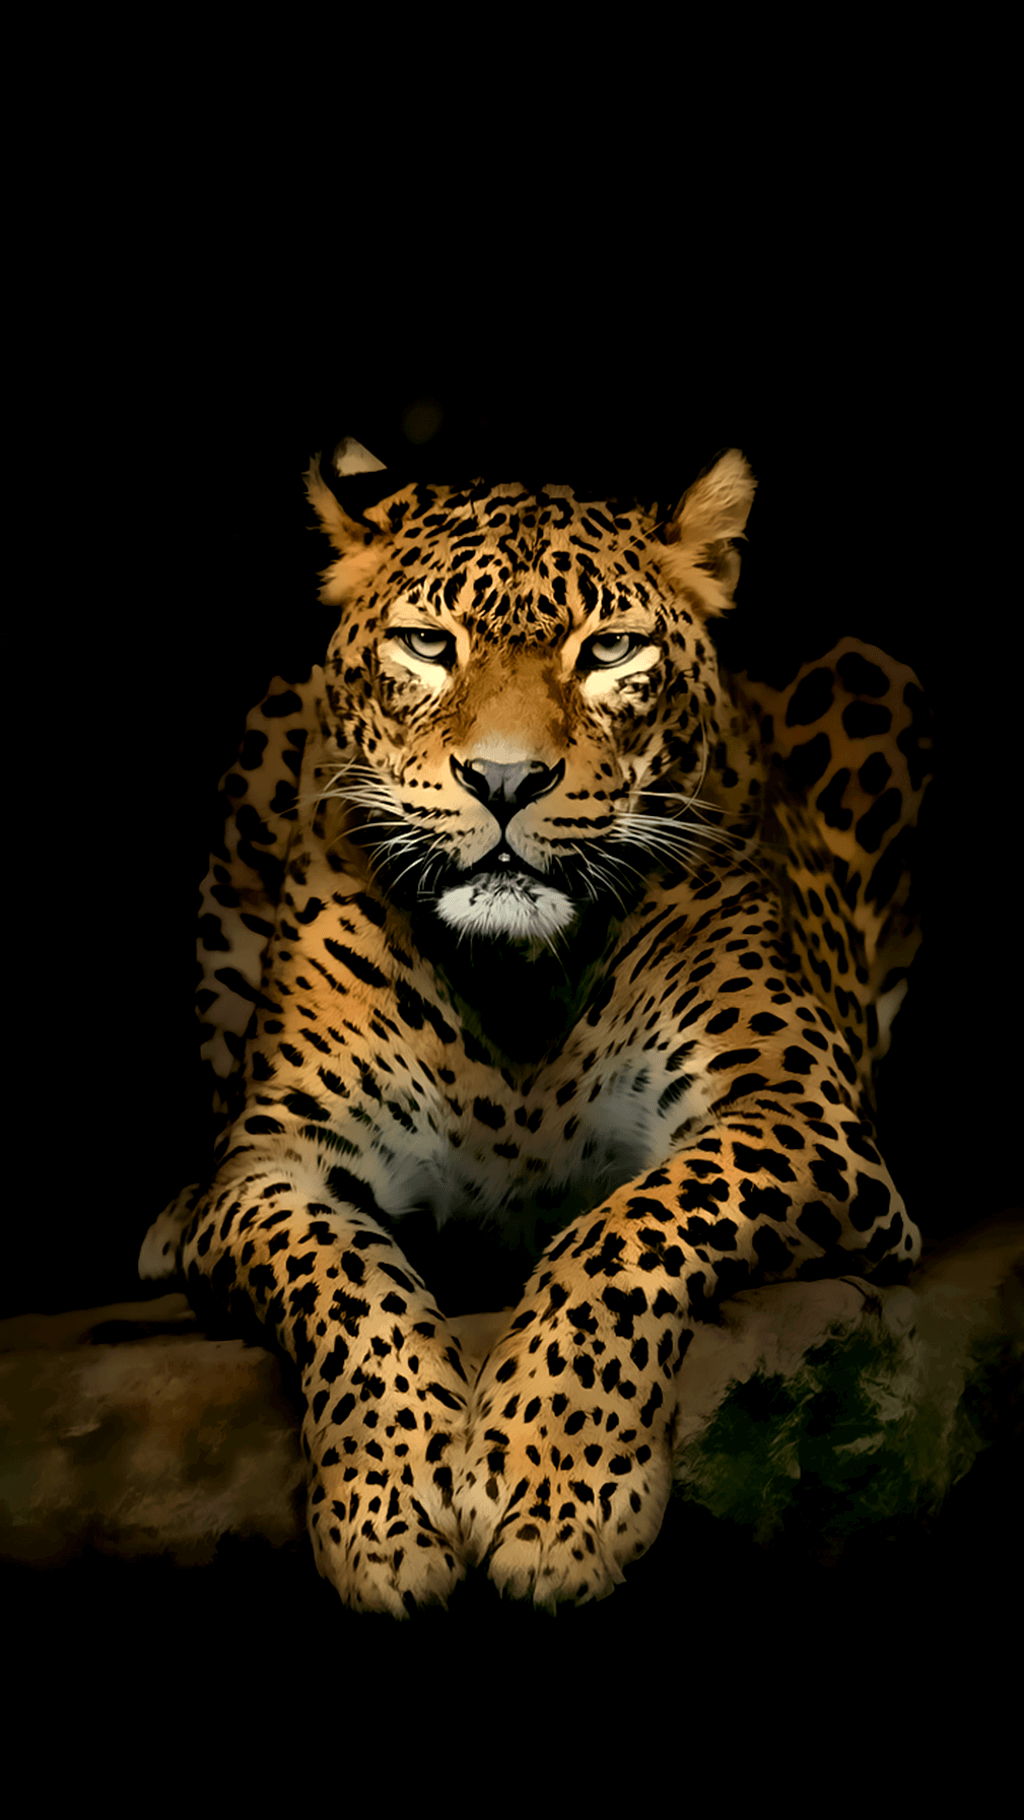 Wallpaper 4k Hd For Mobile Gallery Jaguar Animal Wild Animal Wallpaper Animals